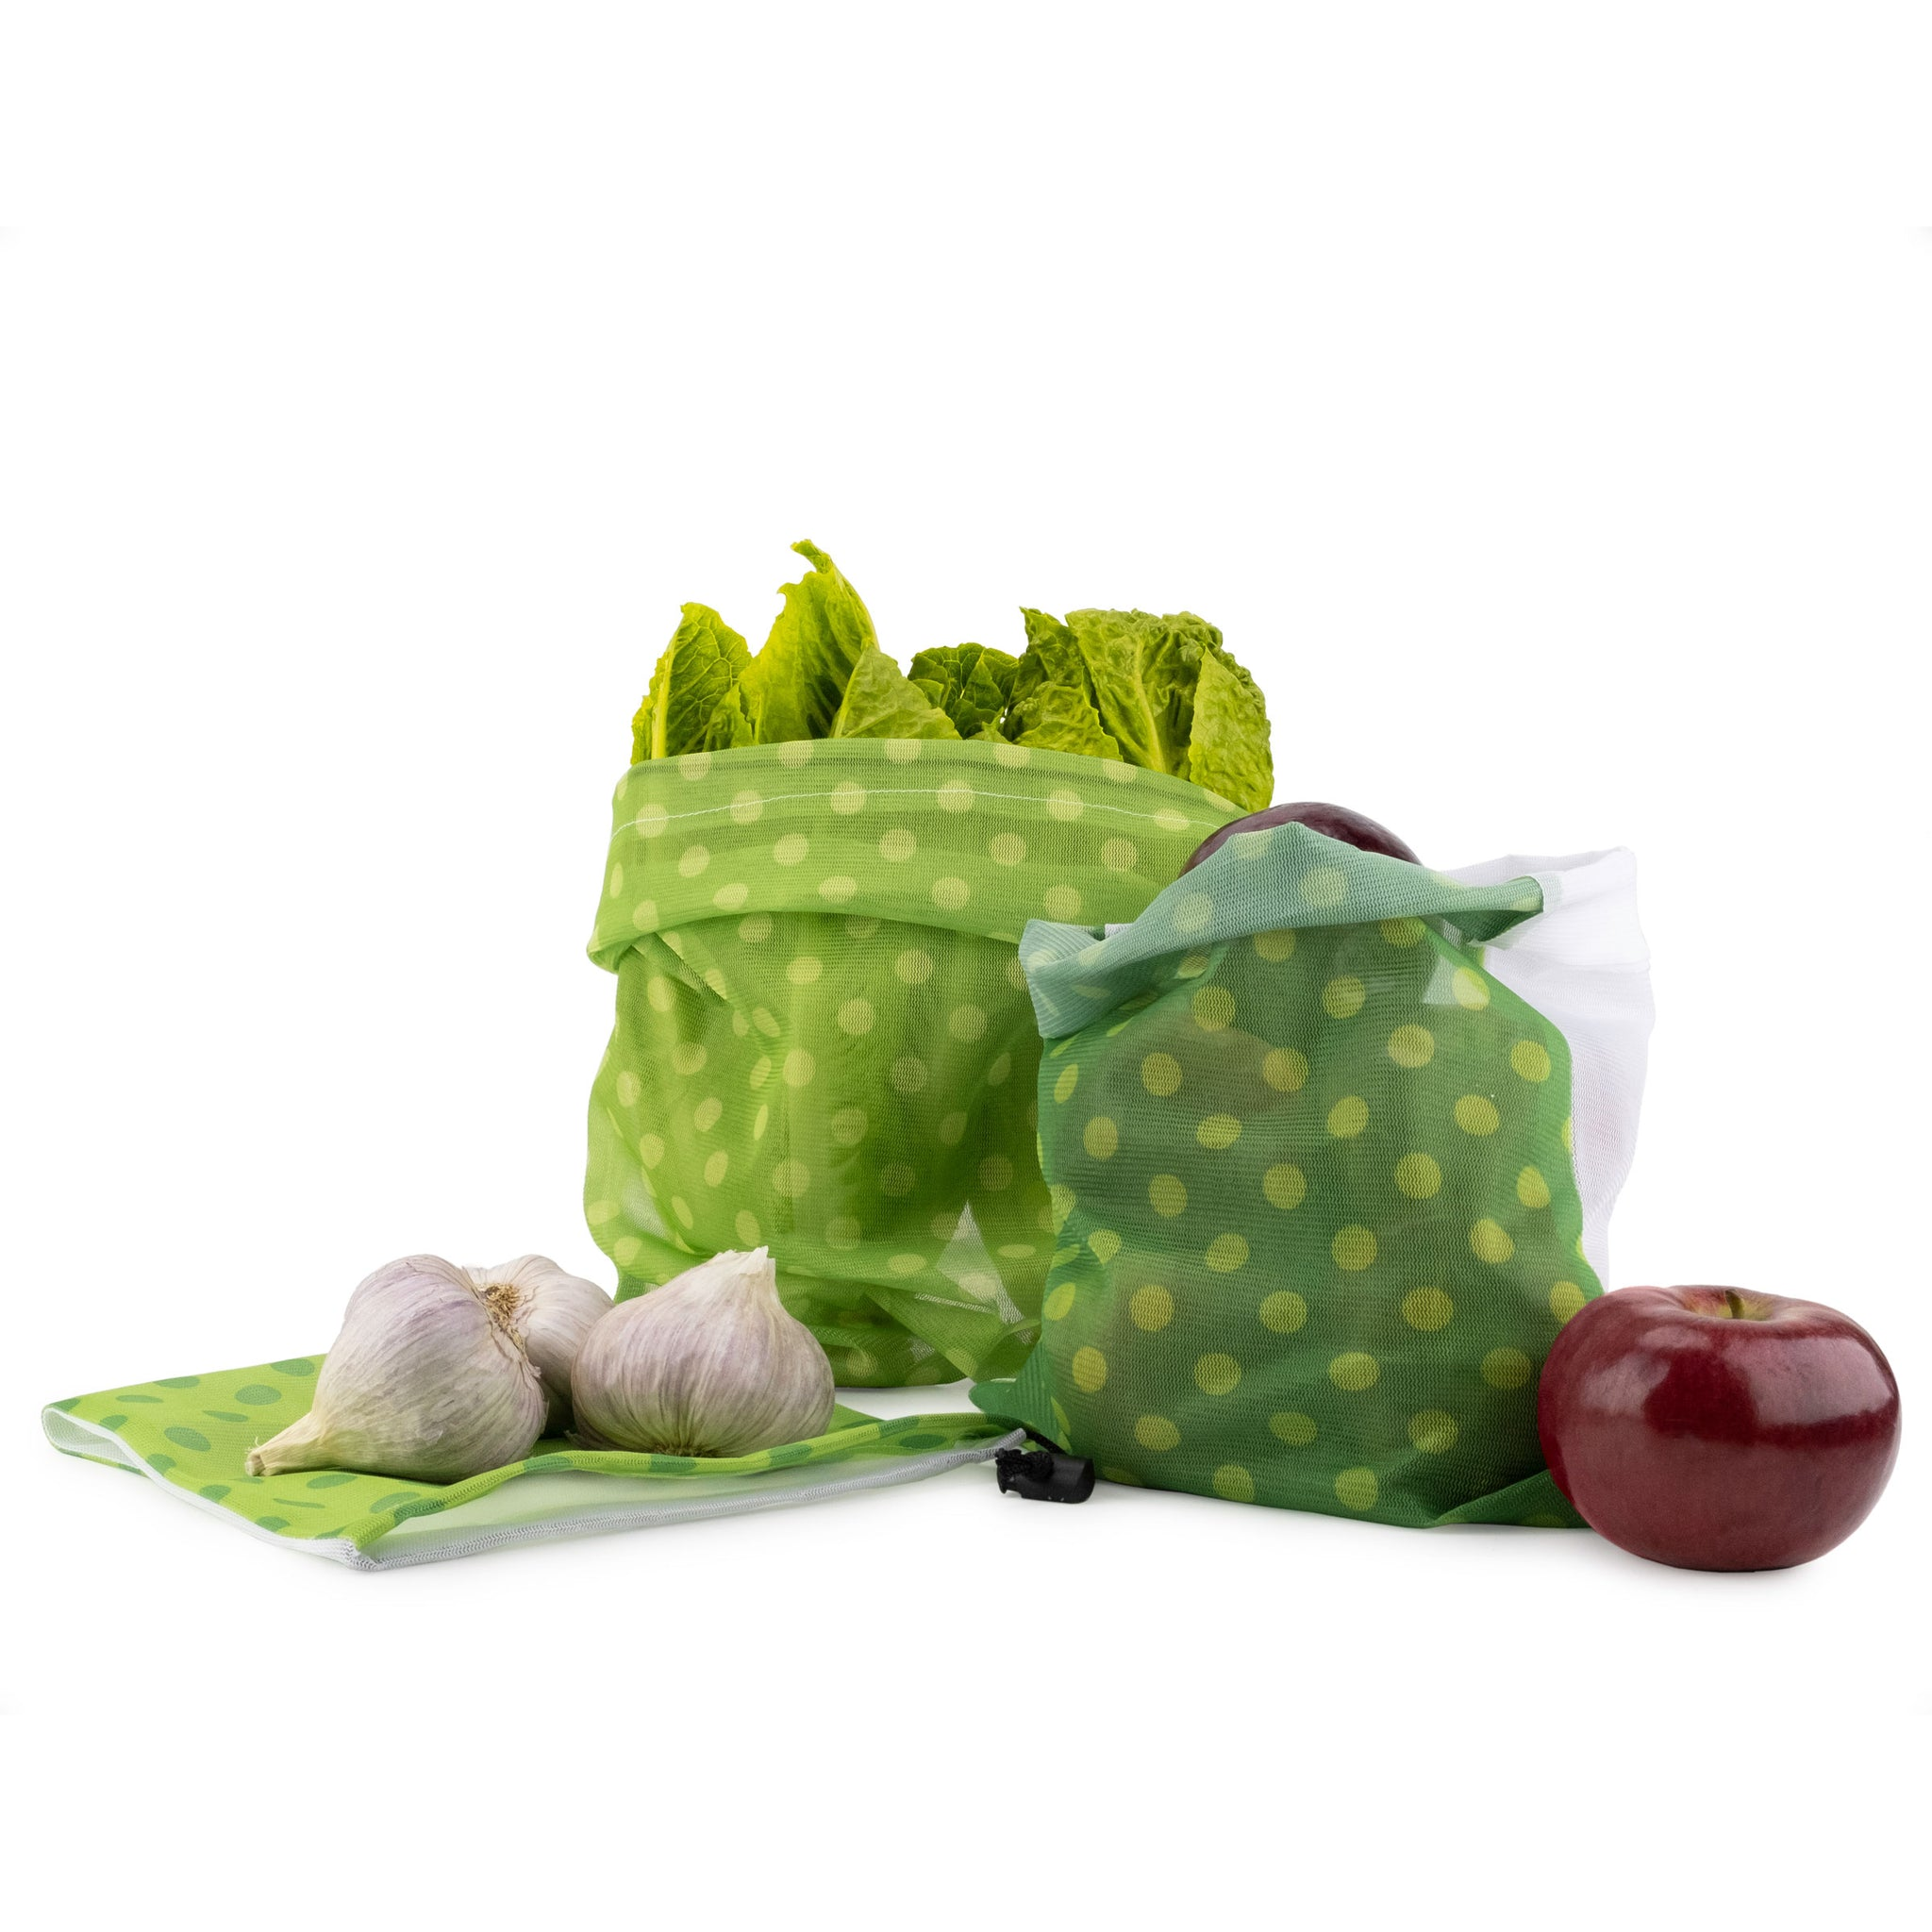 6 Reusable Produce Bags for Fruits and Vegetables